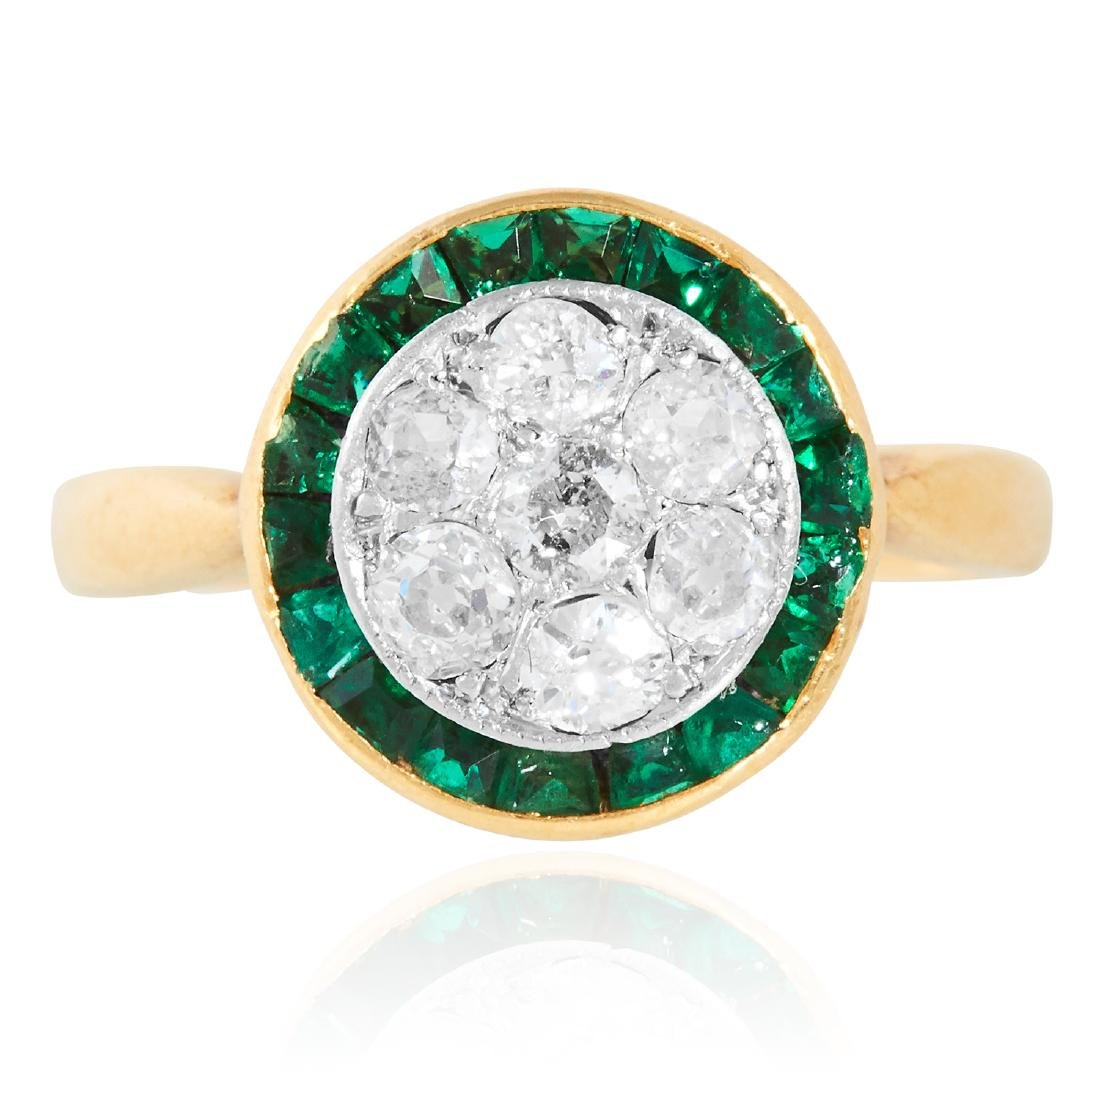 AN ANTIQUE ART DECO DIAMOND AND EMERALD CLUSTER RING in